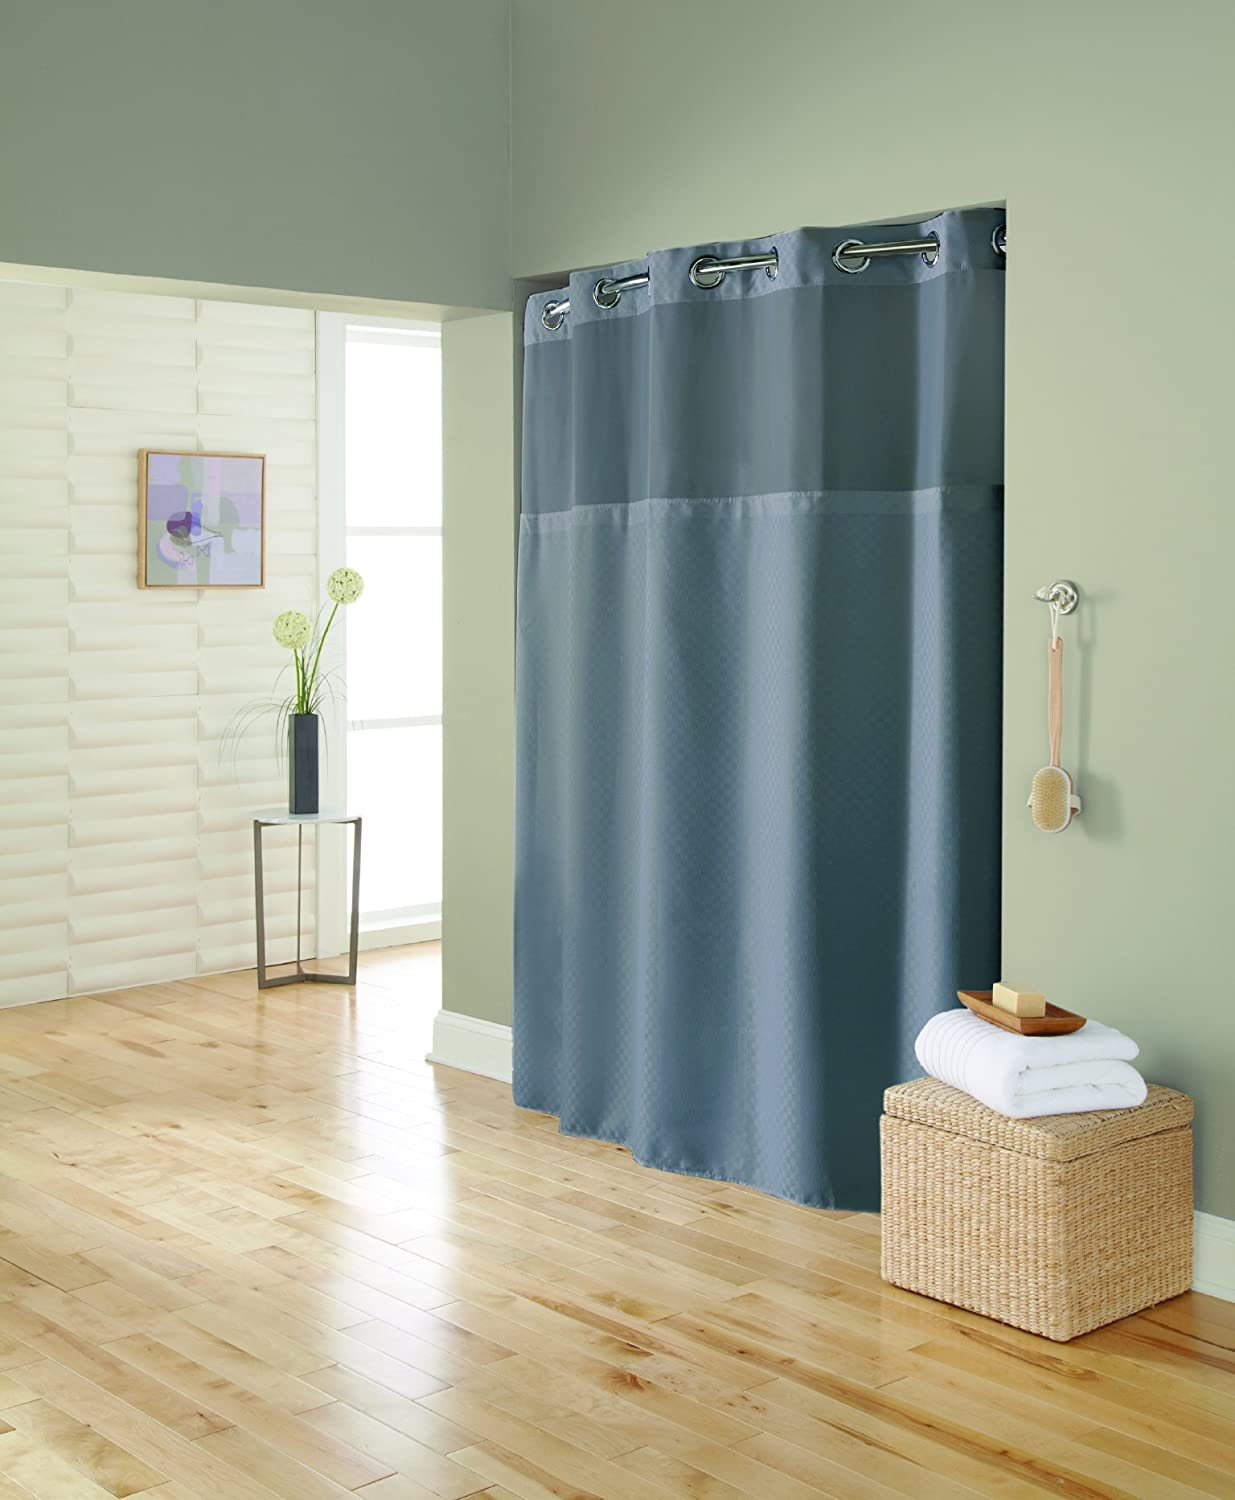 Hookless fabric shower curtain with built in liner taupe diamond pique - Amazon Com Hookless Rbh82my251 Fabric Diamond Pique Shower Curtain With Snap In Liner Brown Home Kitchen